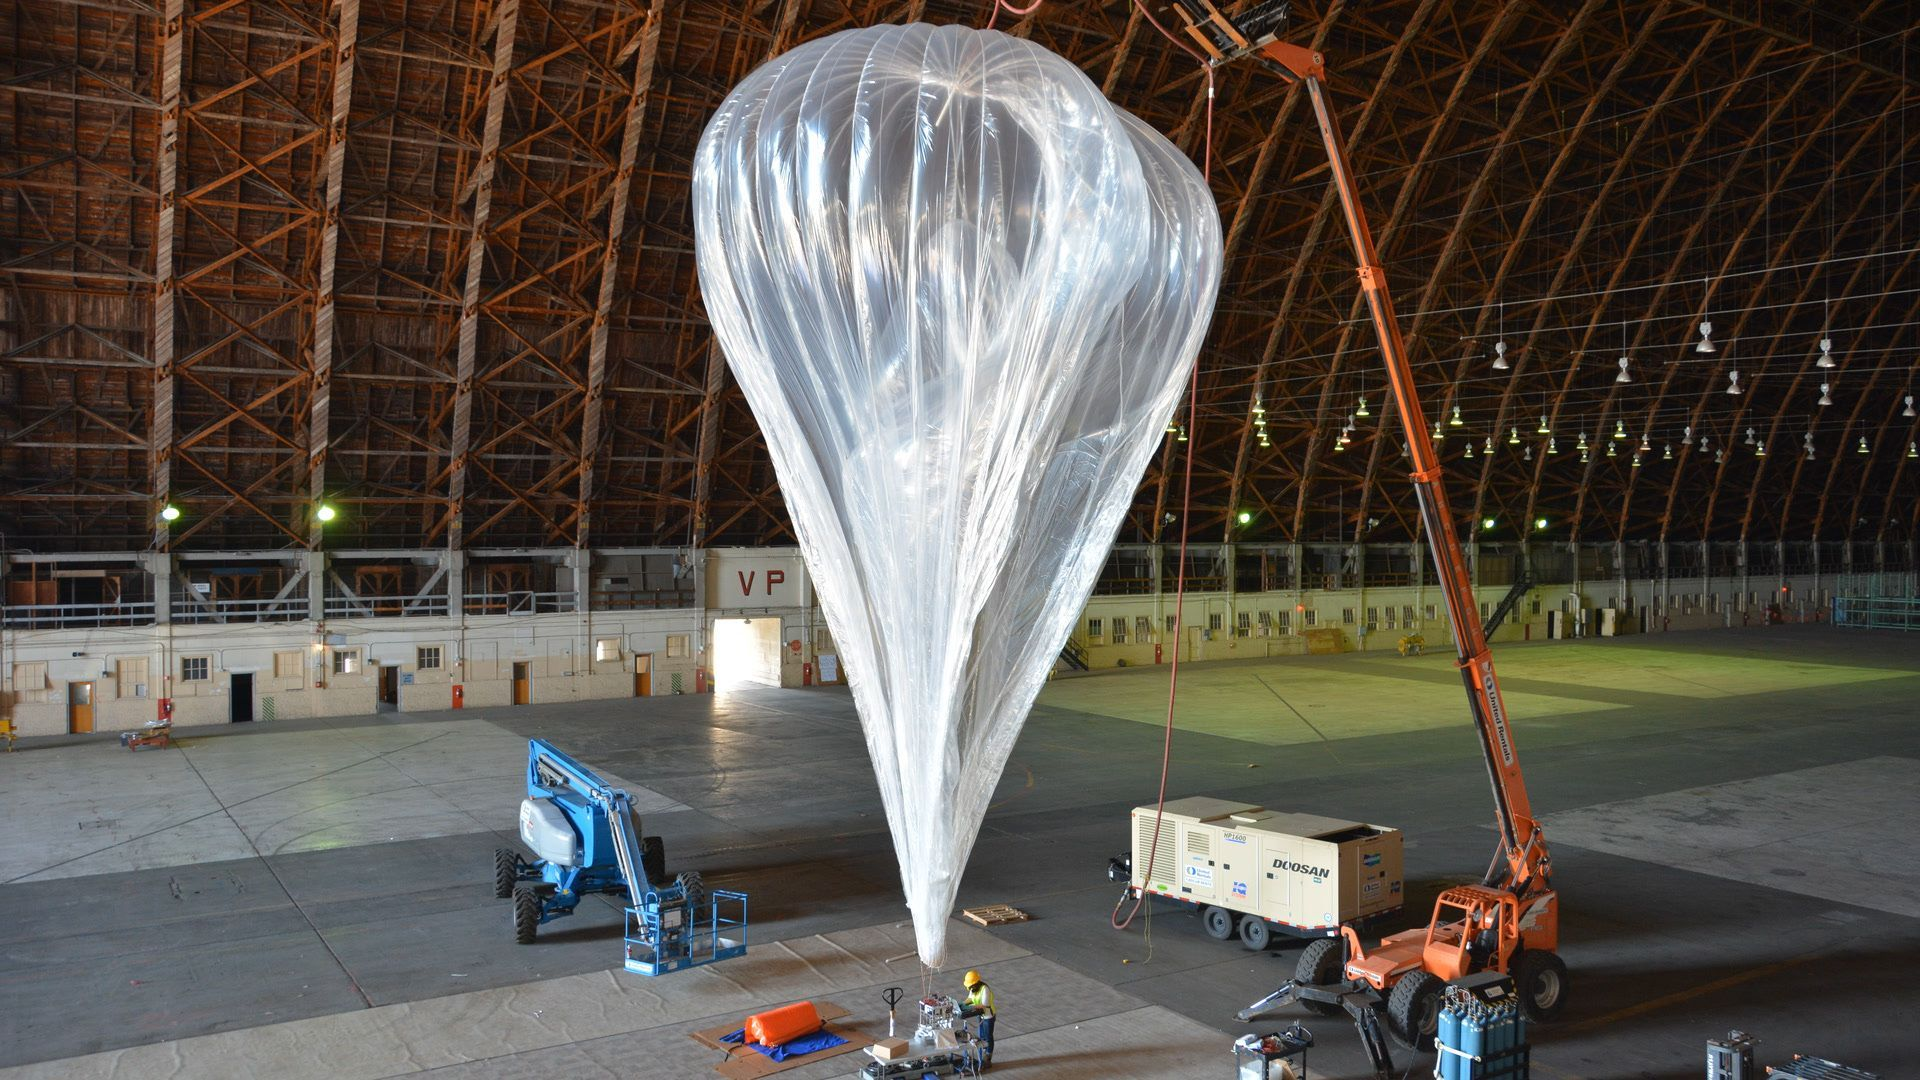 Google Balloon will provide Internet across India, event in native place